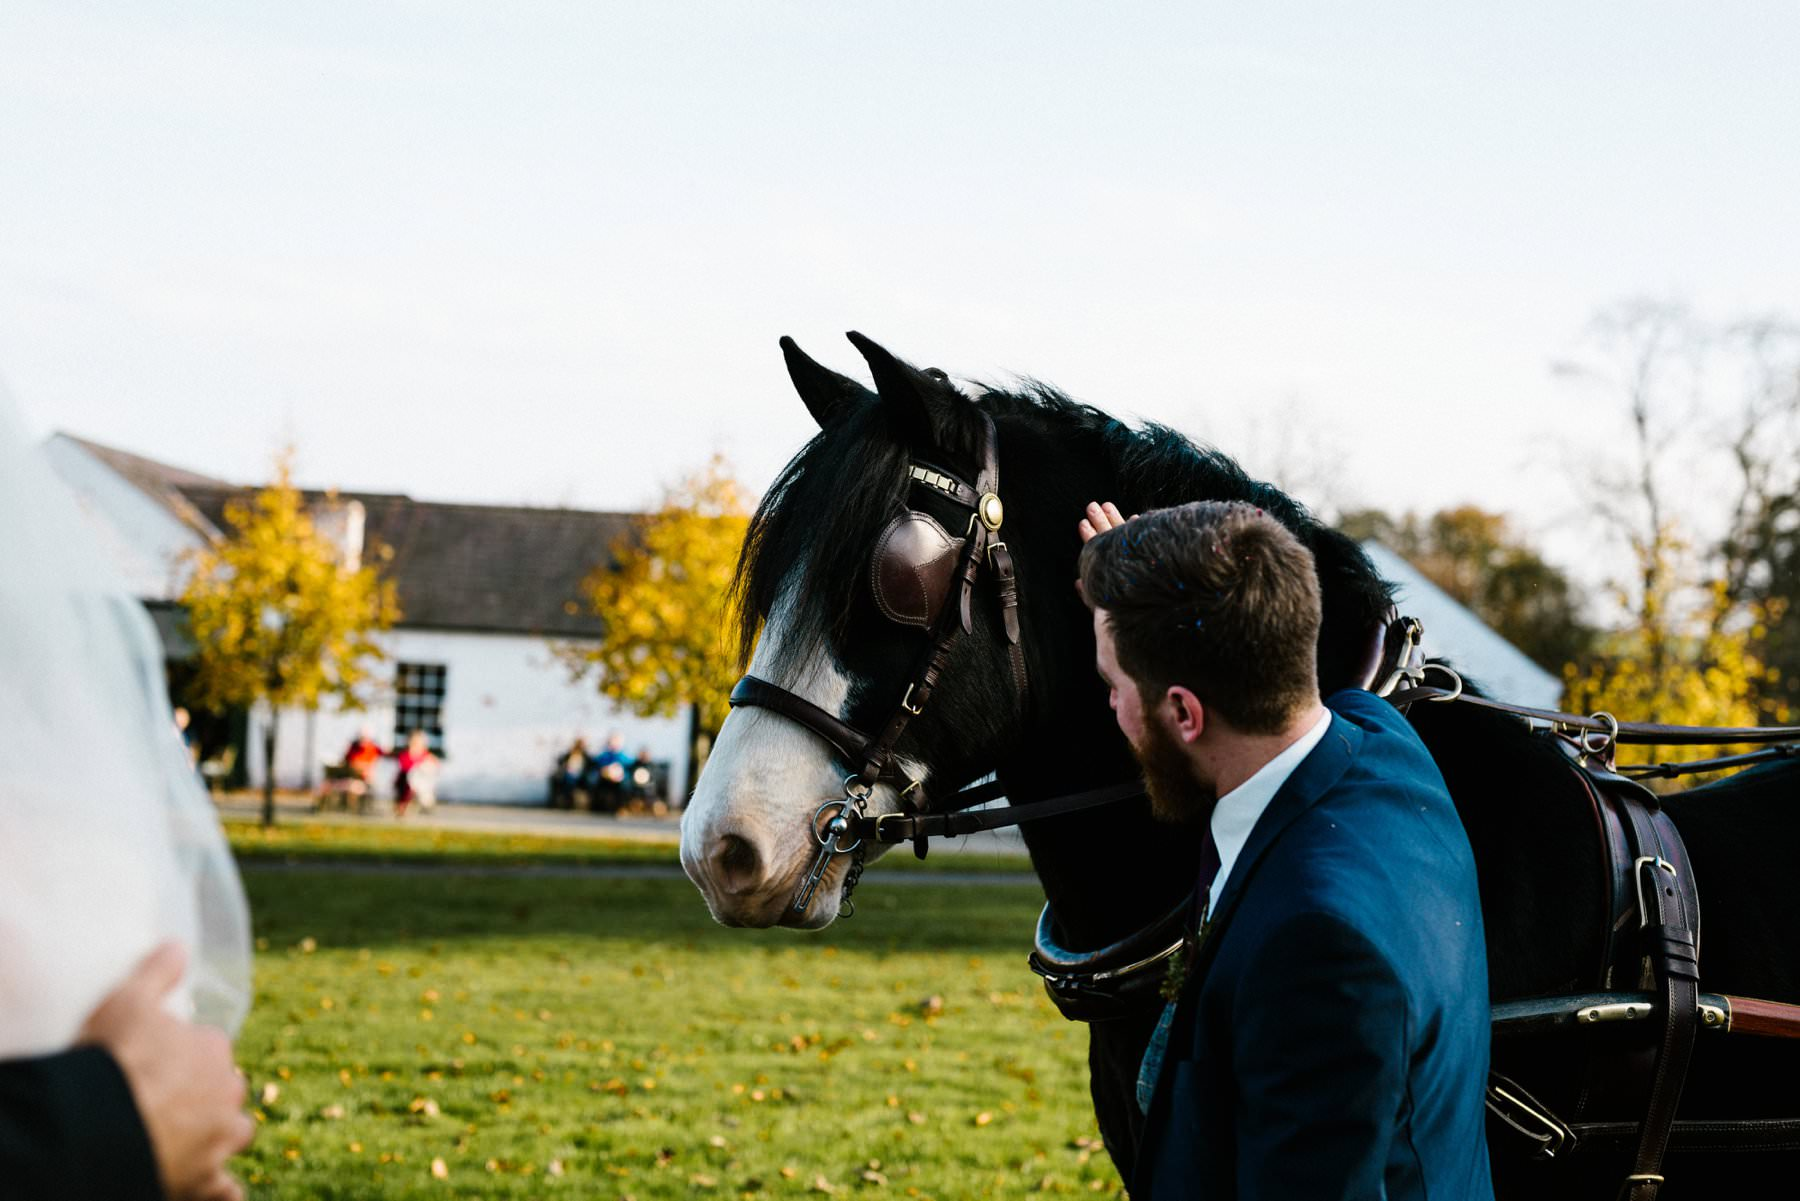 groom with horse wedding photographer northern ireland